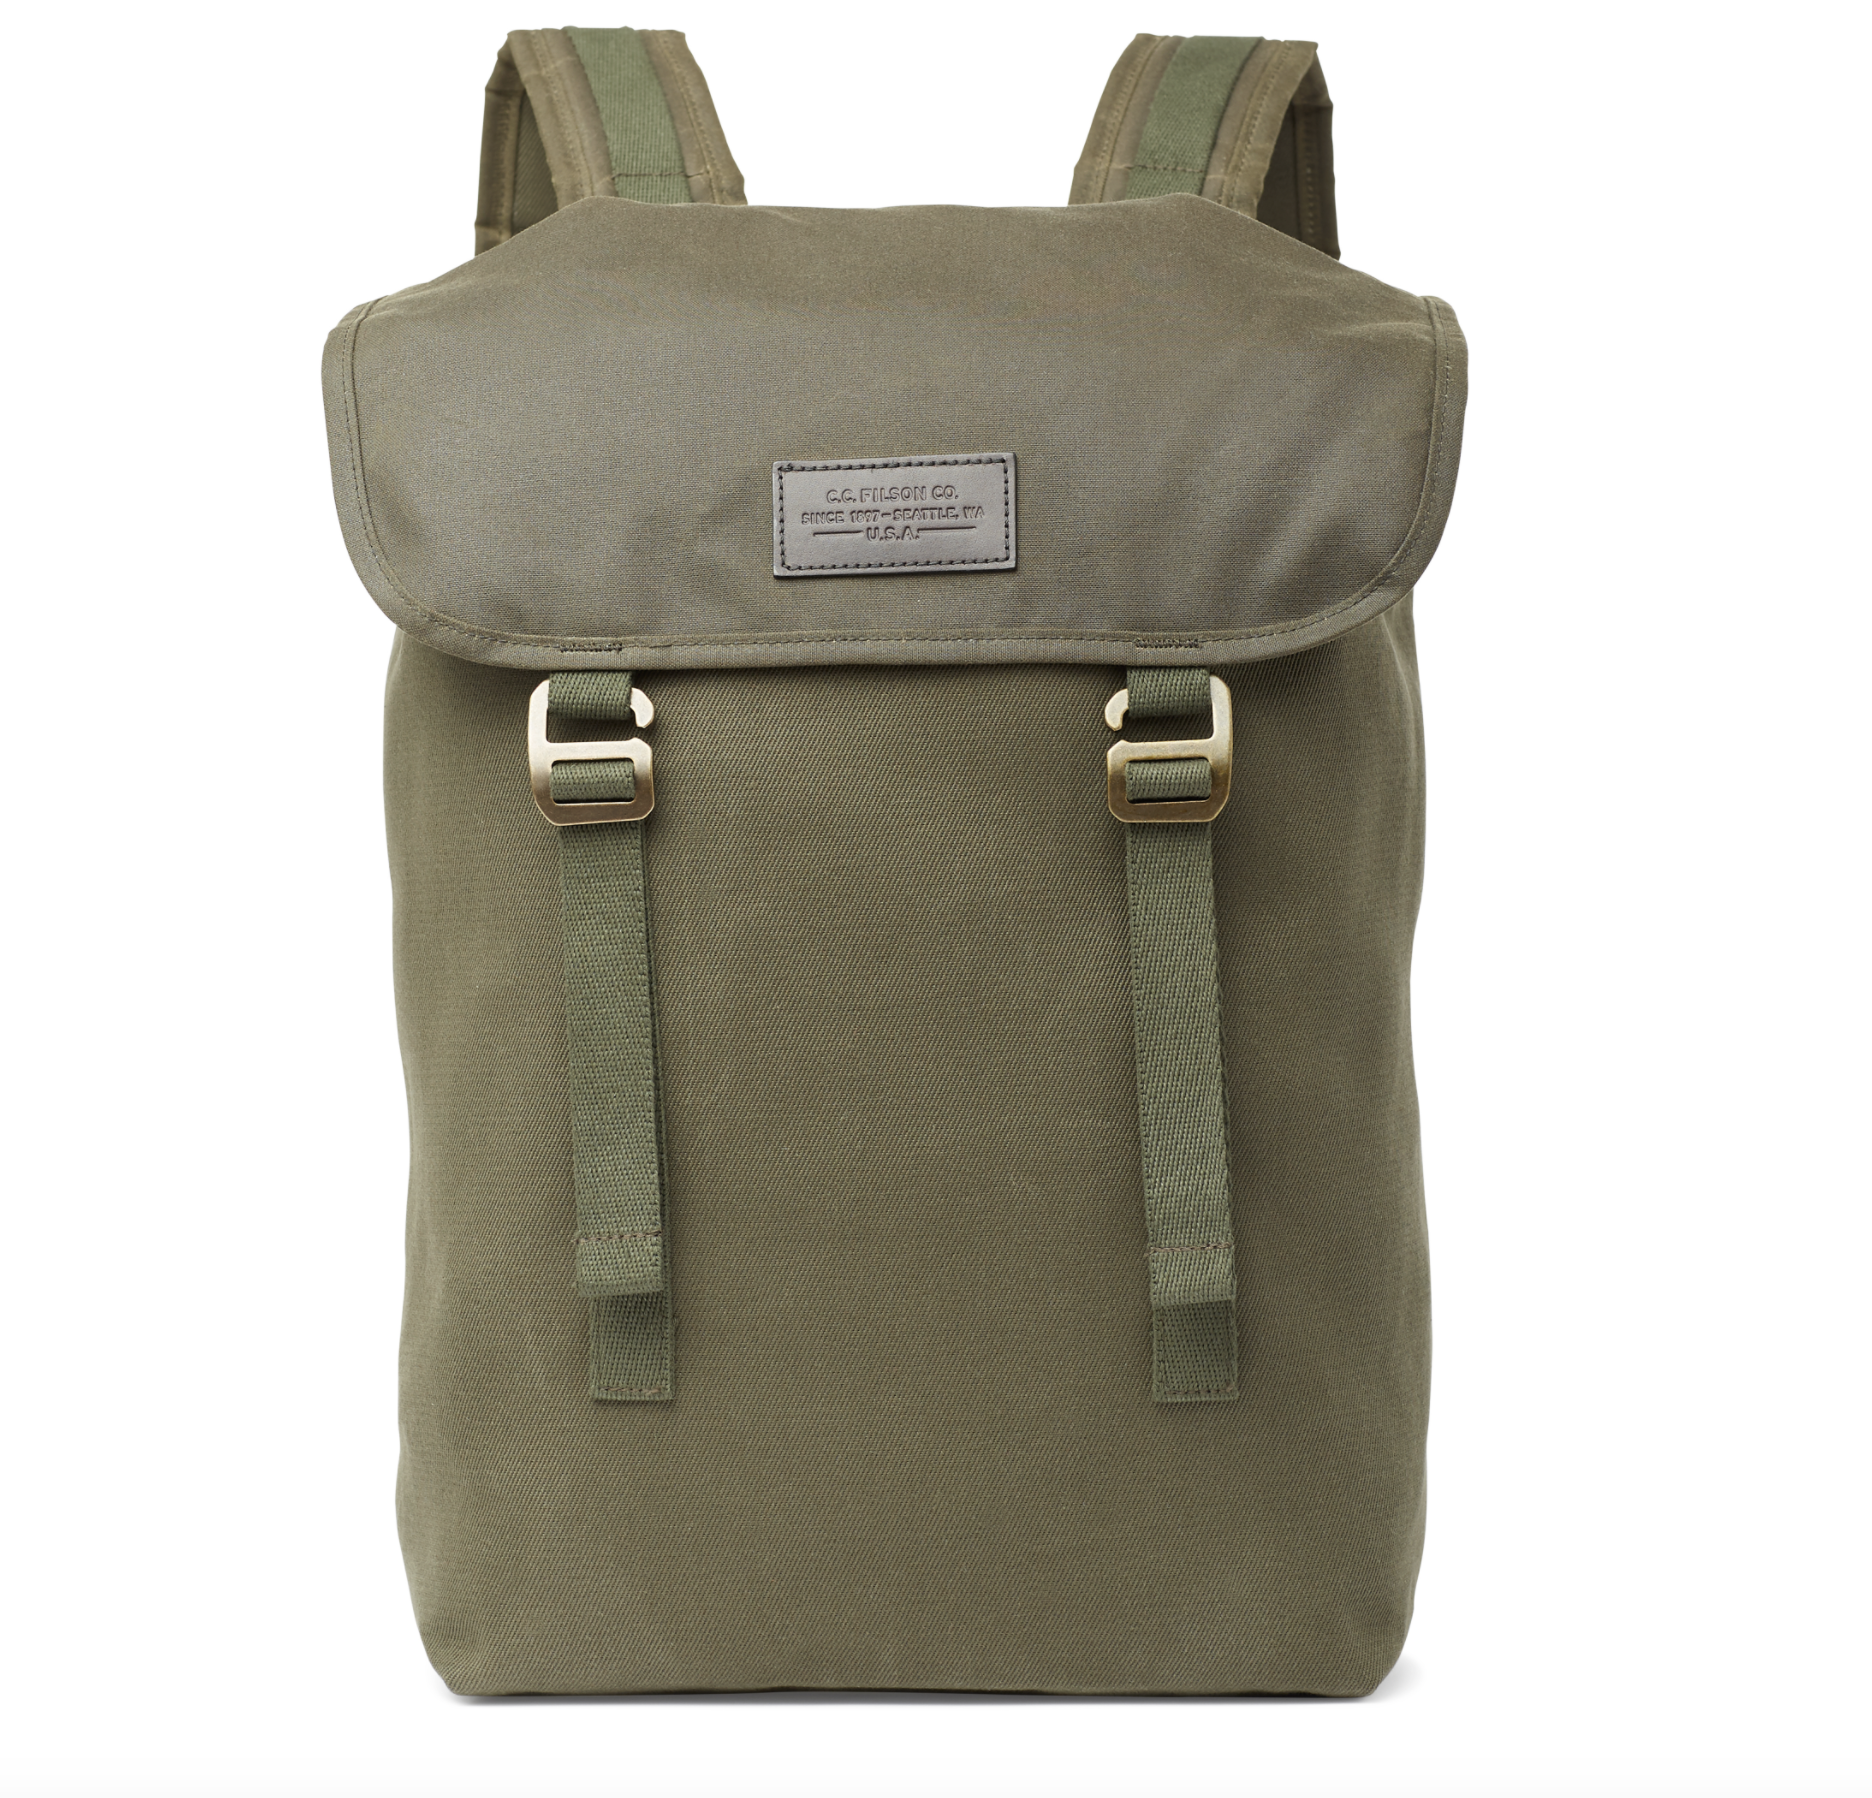 Filson - Rugged Twill Ranger Backpack - Otter Green